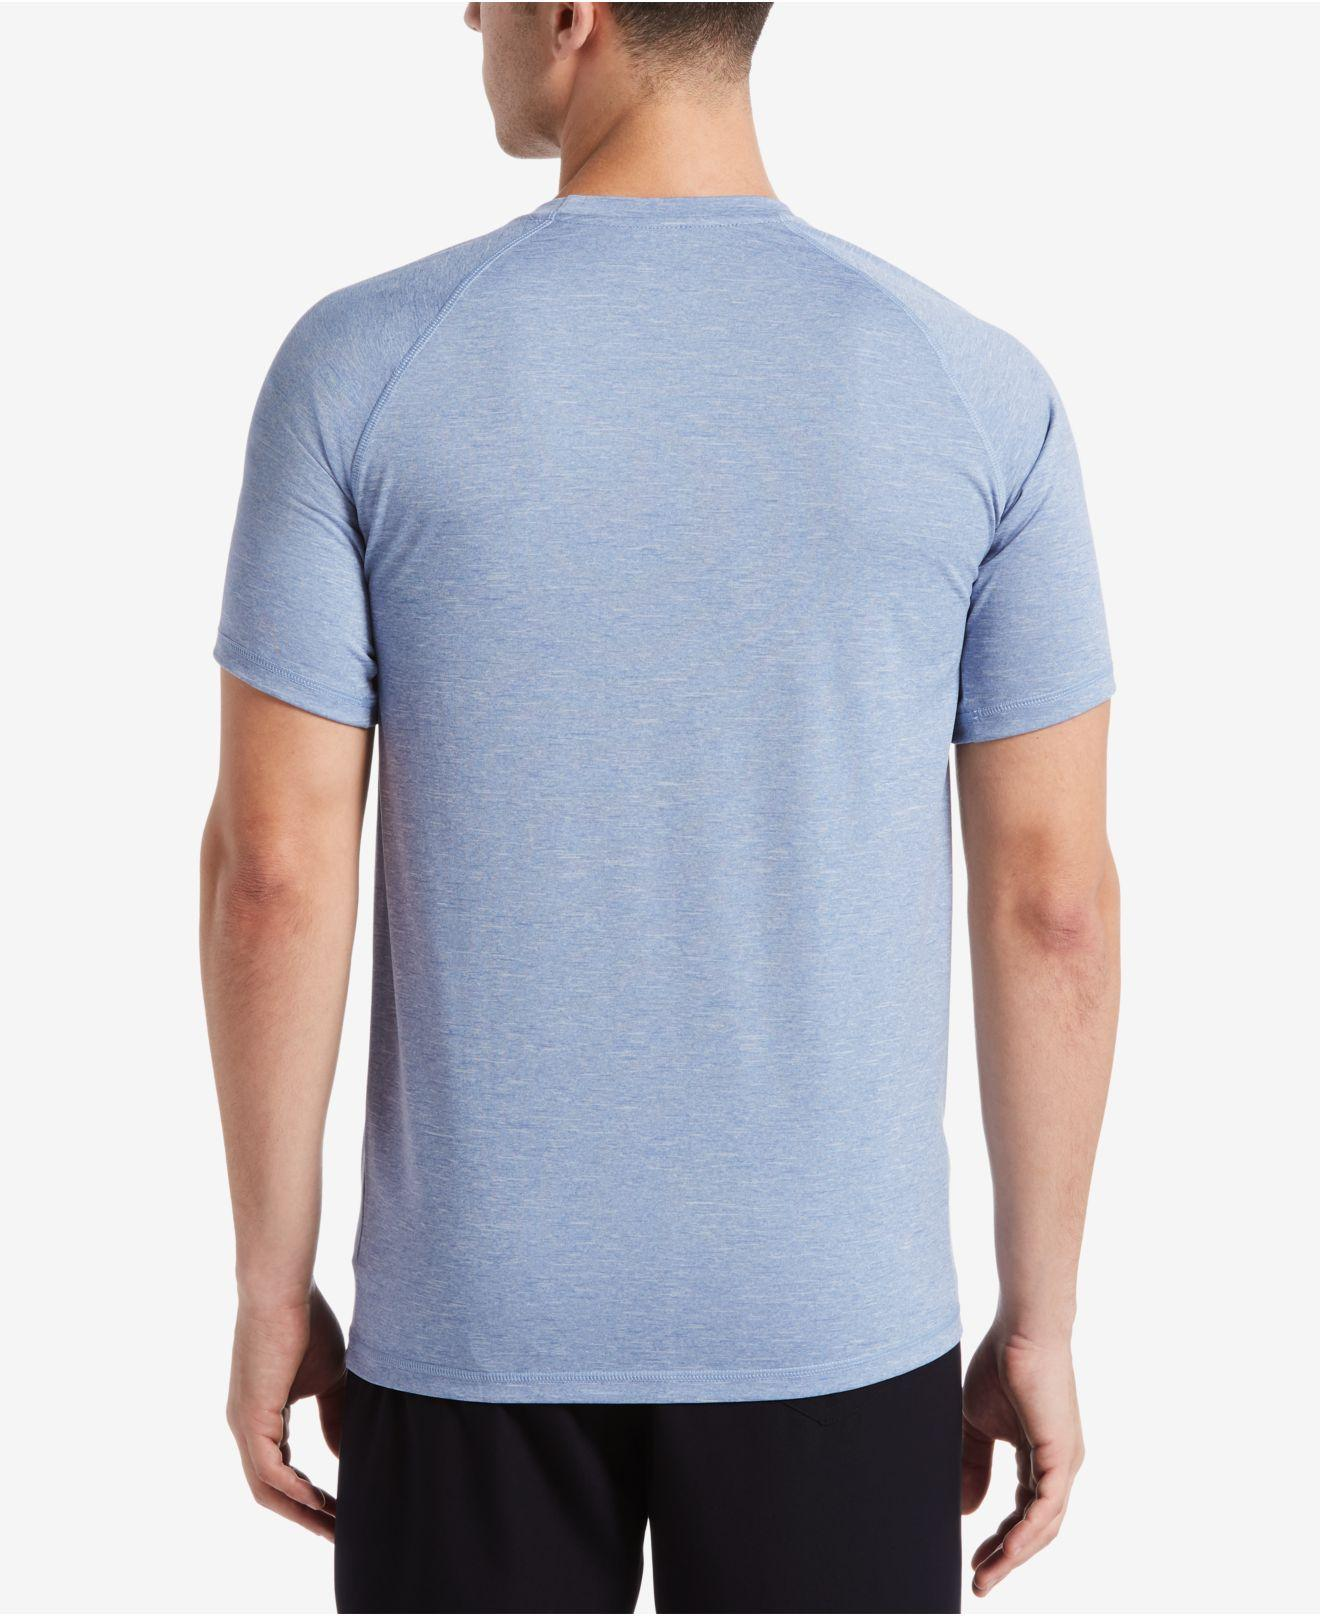 a4fbede6c Lyst - Nike Hydroguard Upf 40 Sun Protection Swim T-shirt in Blue for Men